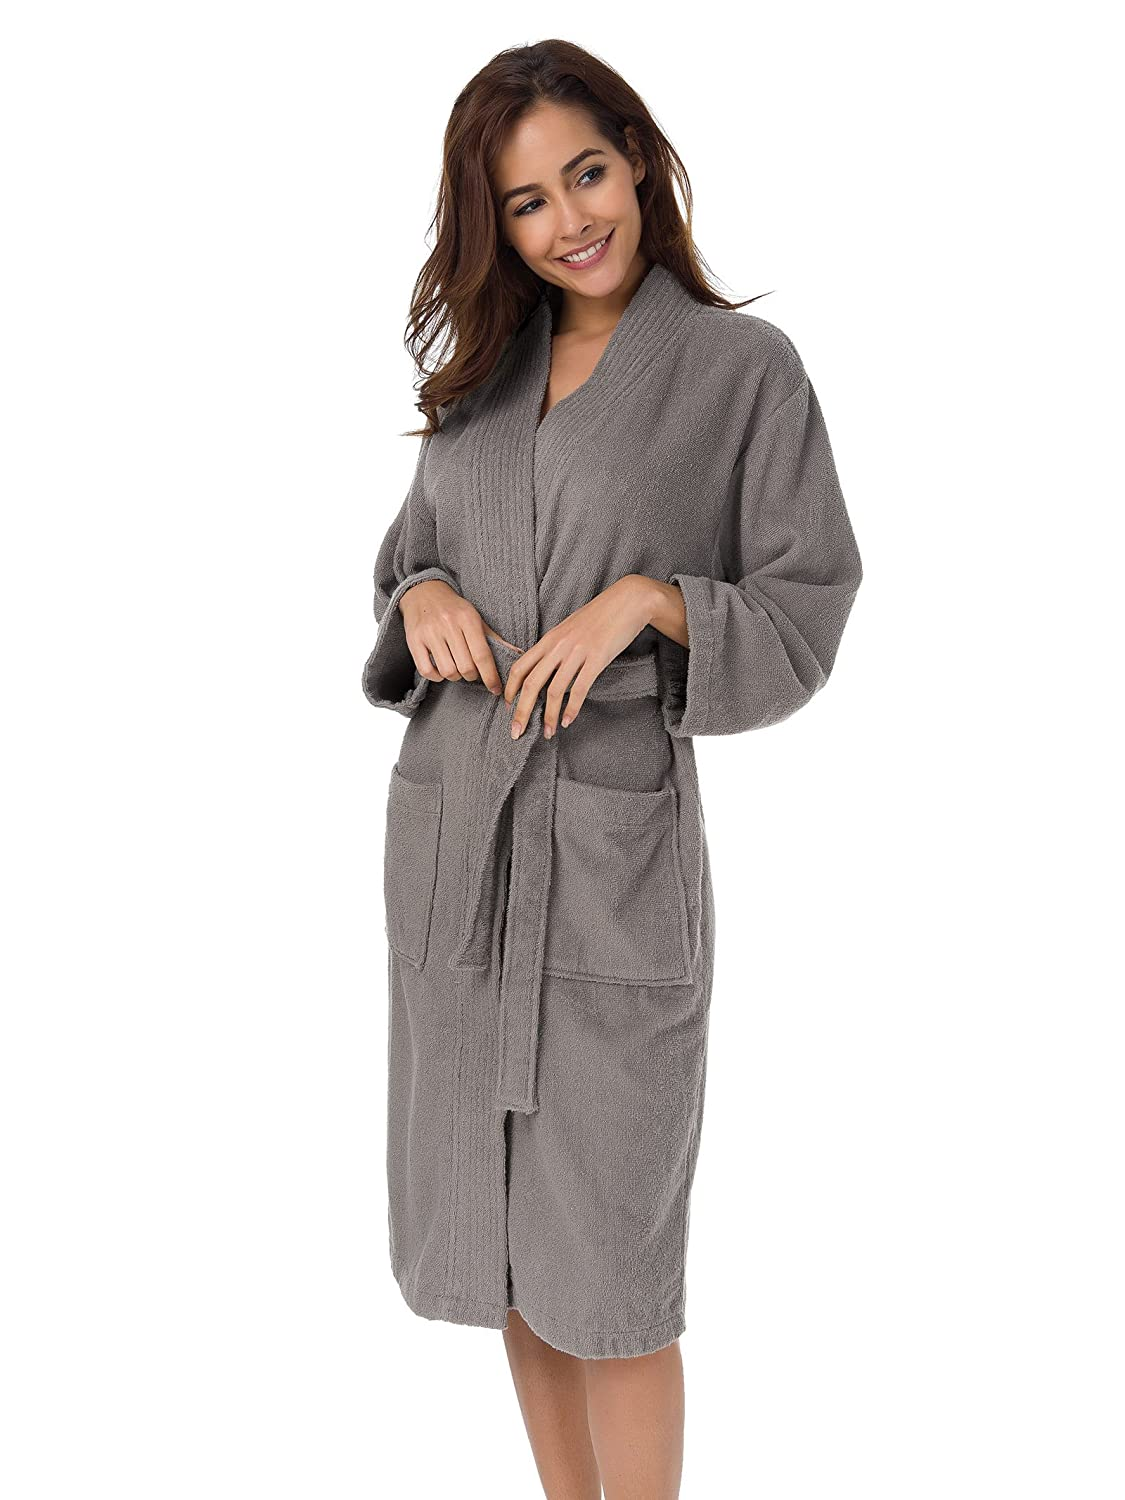 SIORO Women s Robe Bath Wrap 0d1e45734